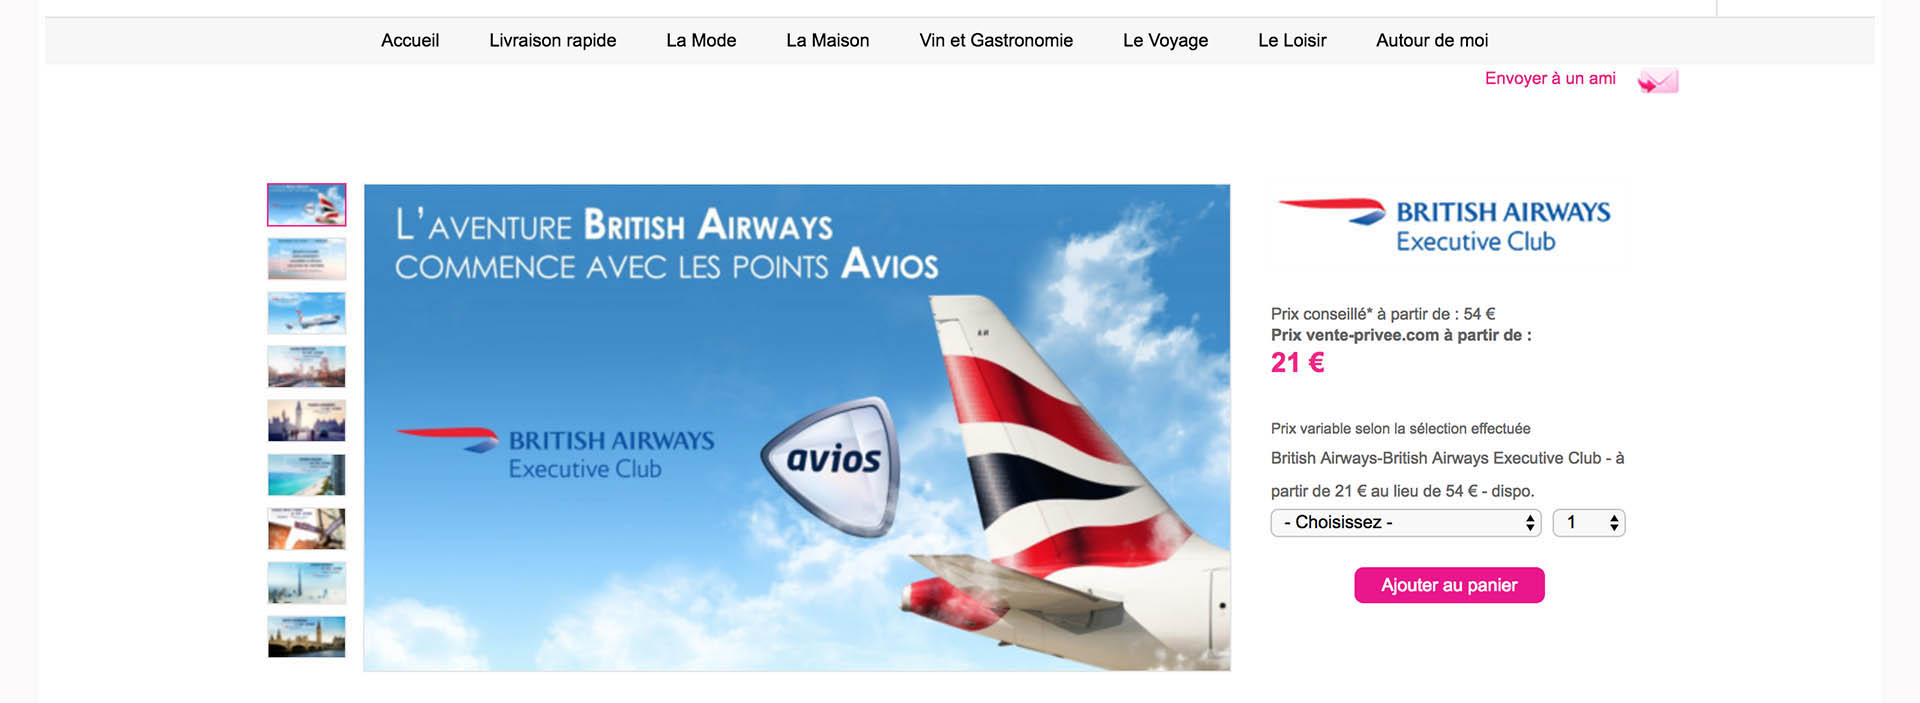 A Guide to Buying Avios Miles for 1.14 Eurocent per Mile Through Vente-Privee